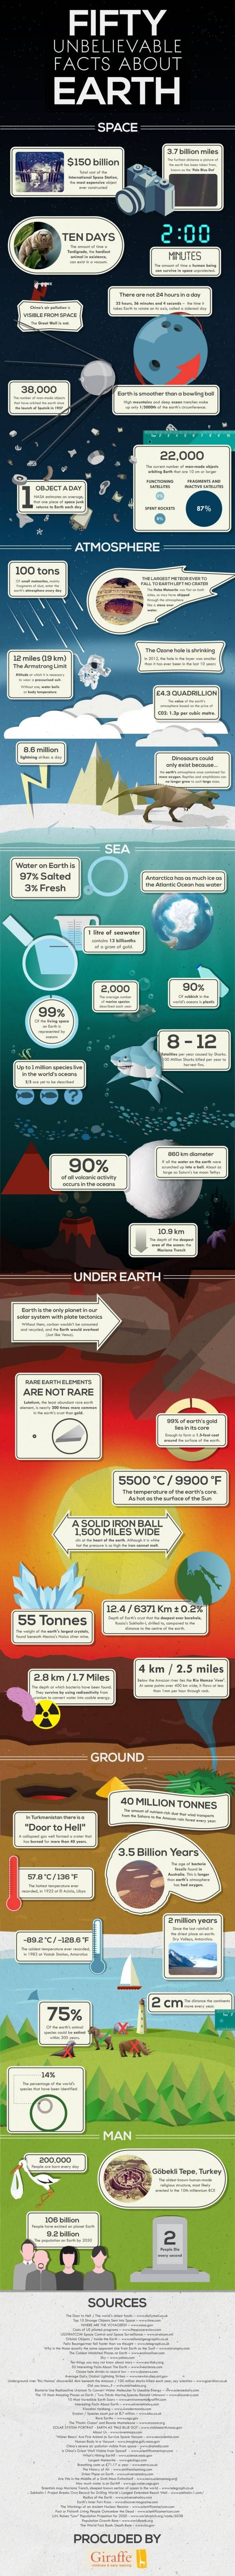 Infographic: 50 Unbelievable Facts About Earth